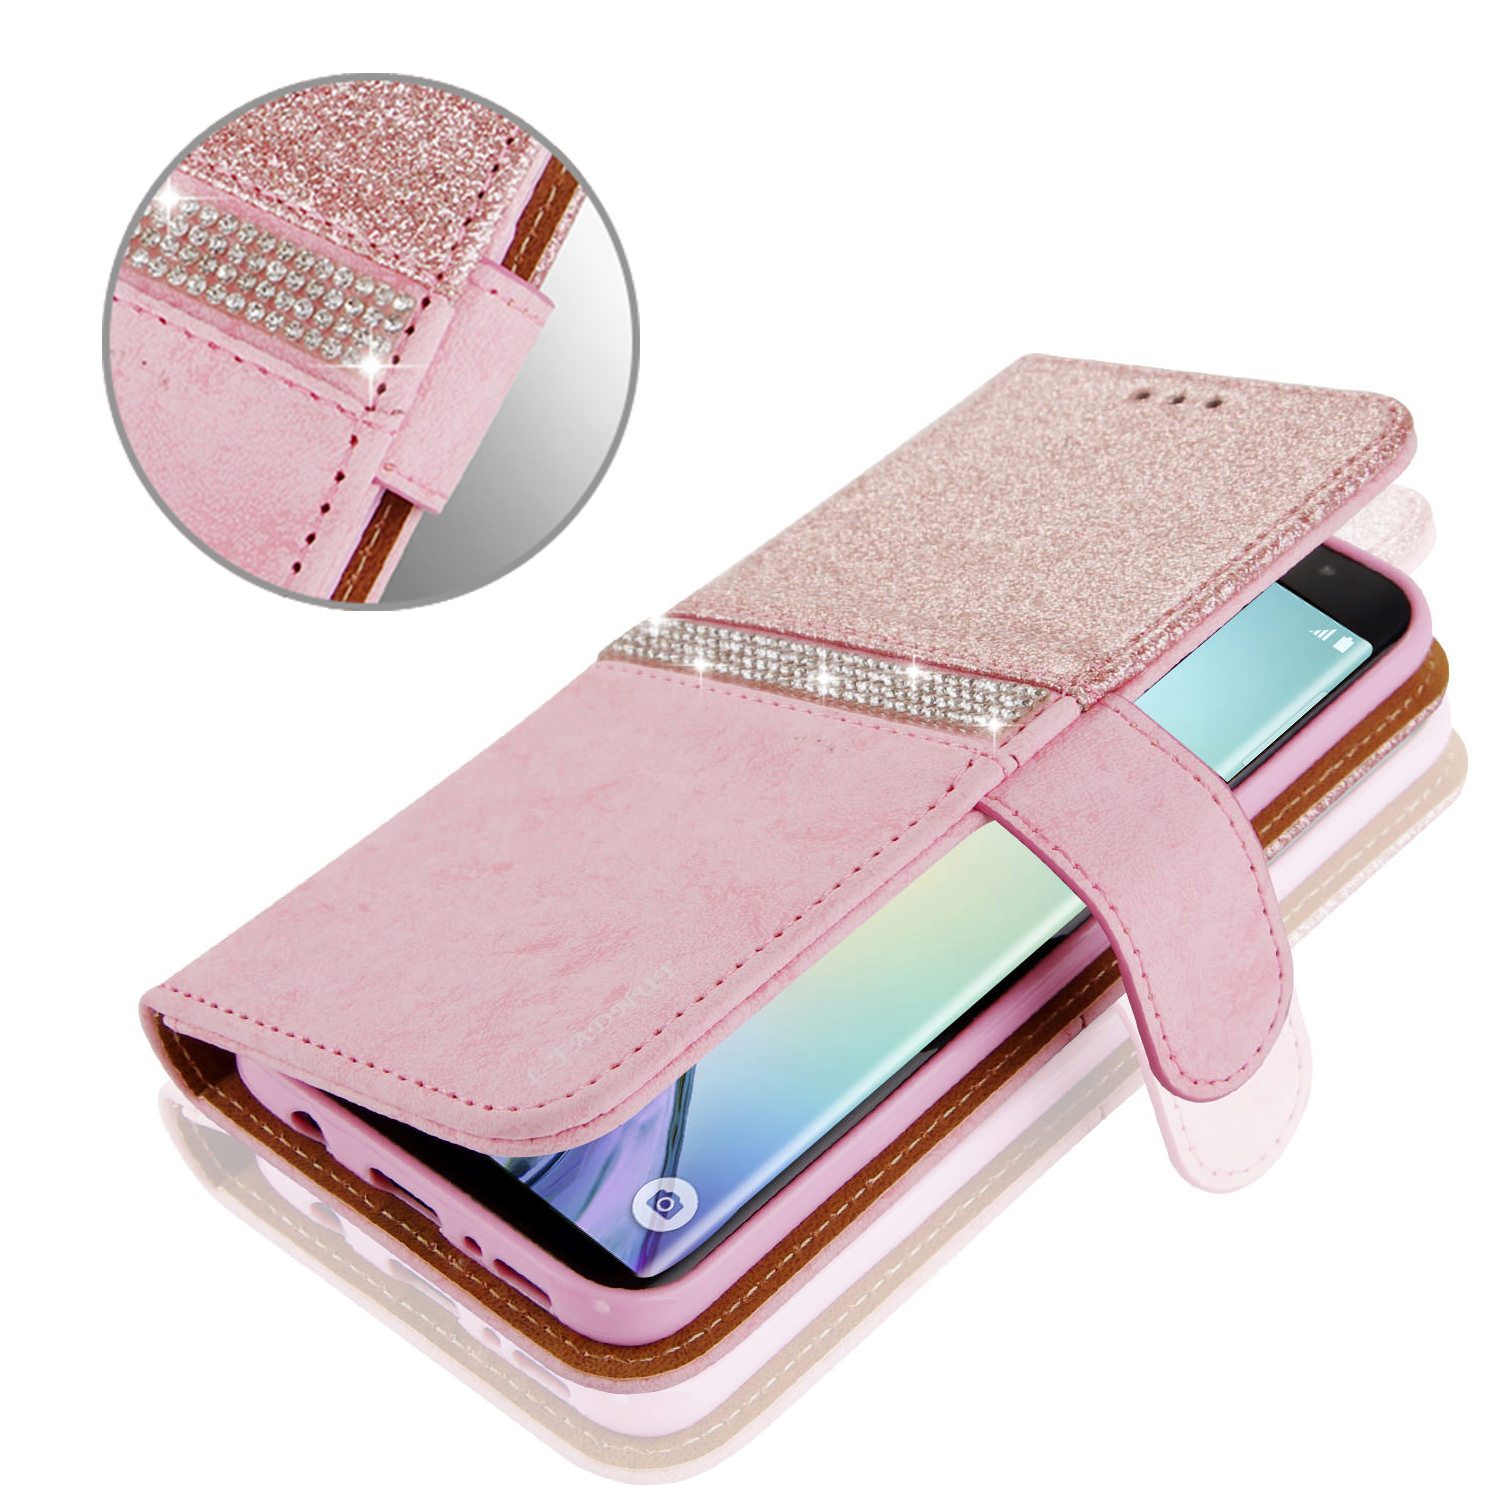 HTB1zRPNX.D1gK0jSZFGq6zd3FXaL - Bling Glitter Wallet Phone Case For iPhone X Xr Xs 11 Pro Max Leather Purse For Apple 6S 6 8 7 Plus 5 5S SE 2020 360 Girls Cover